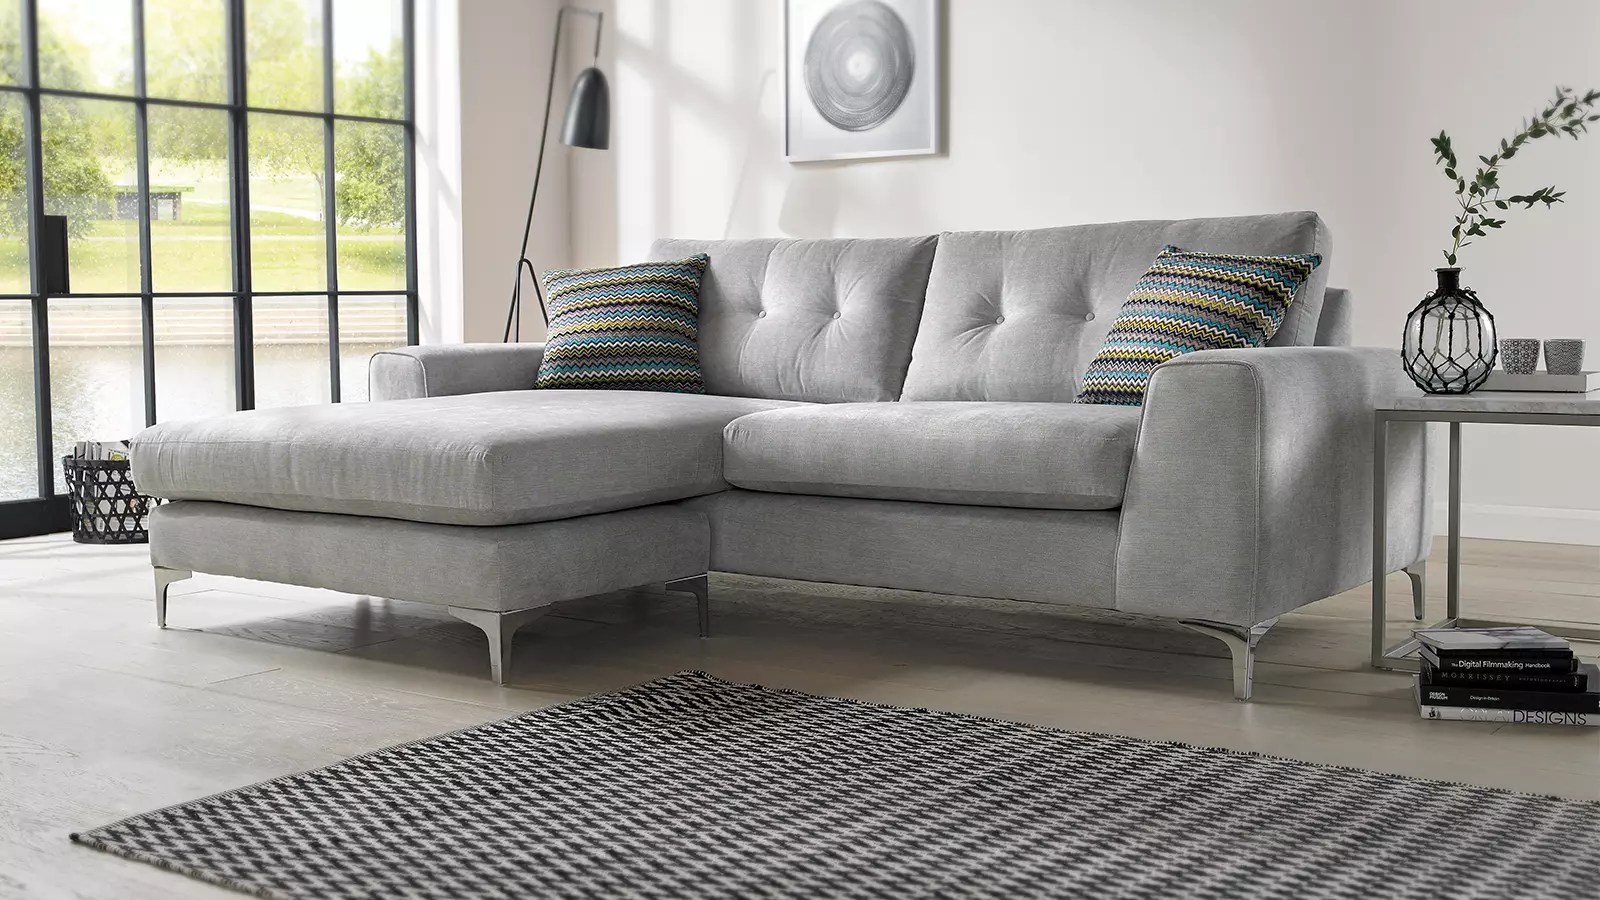 Designer Sofas Sofa Sizes To Fit Your Space | Sofology